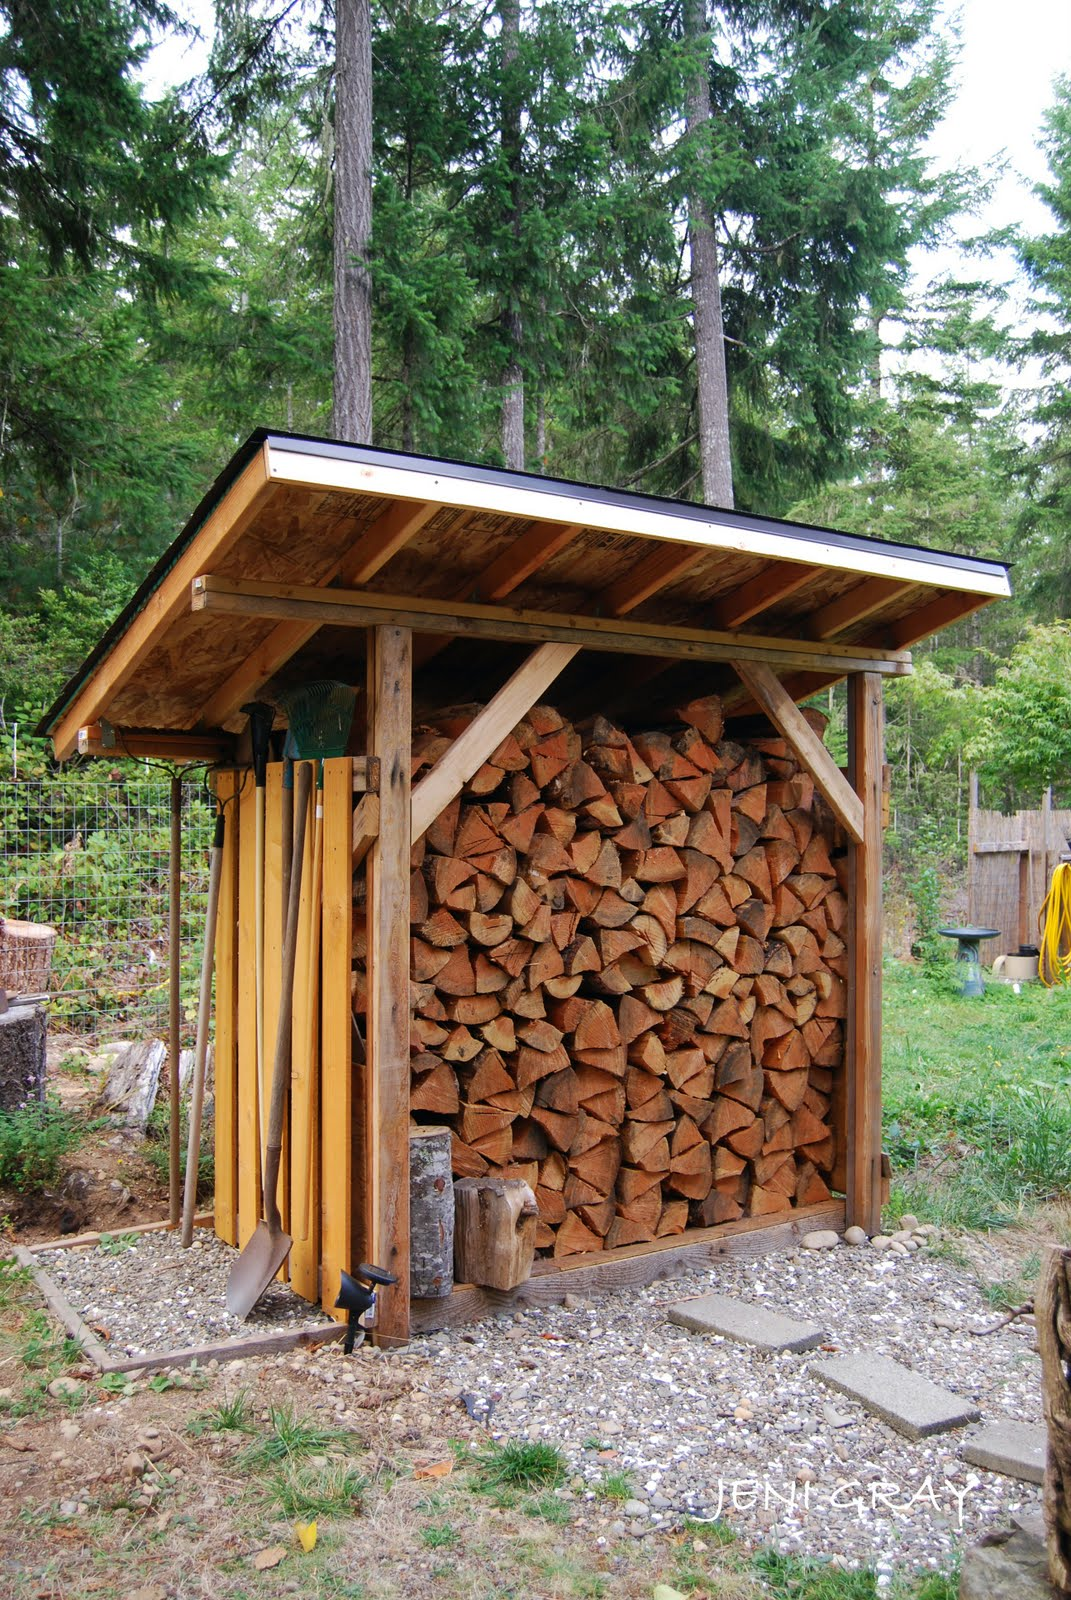 Plans For Building A Firewood Storage Shed - House Design And Decorating Ideas